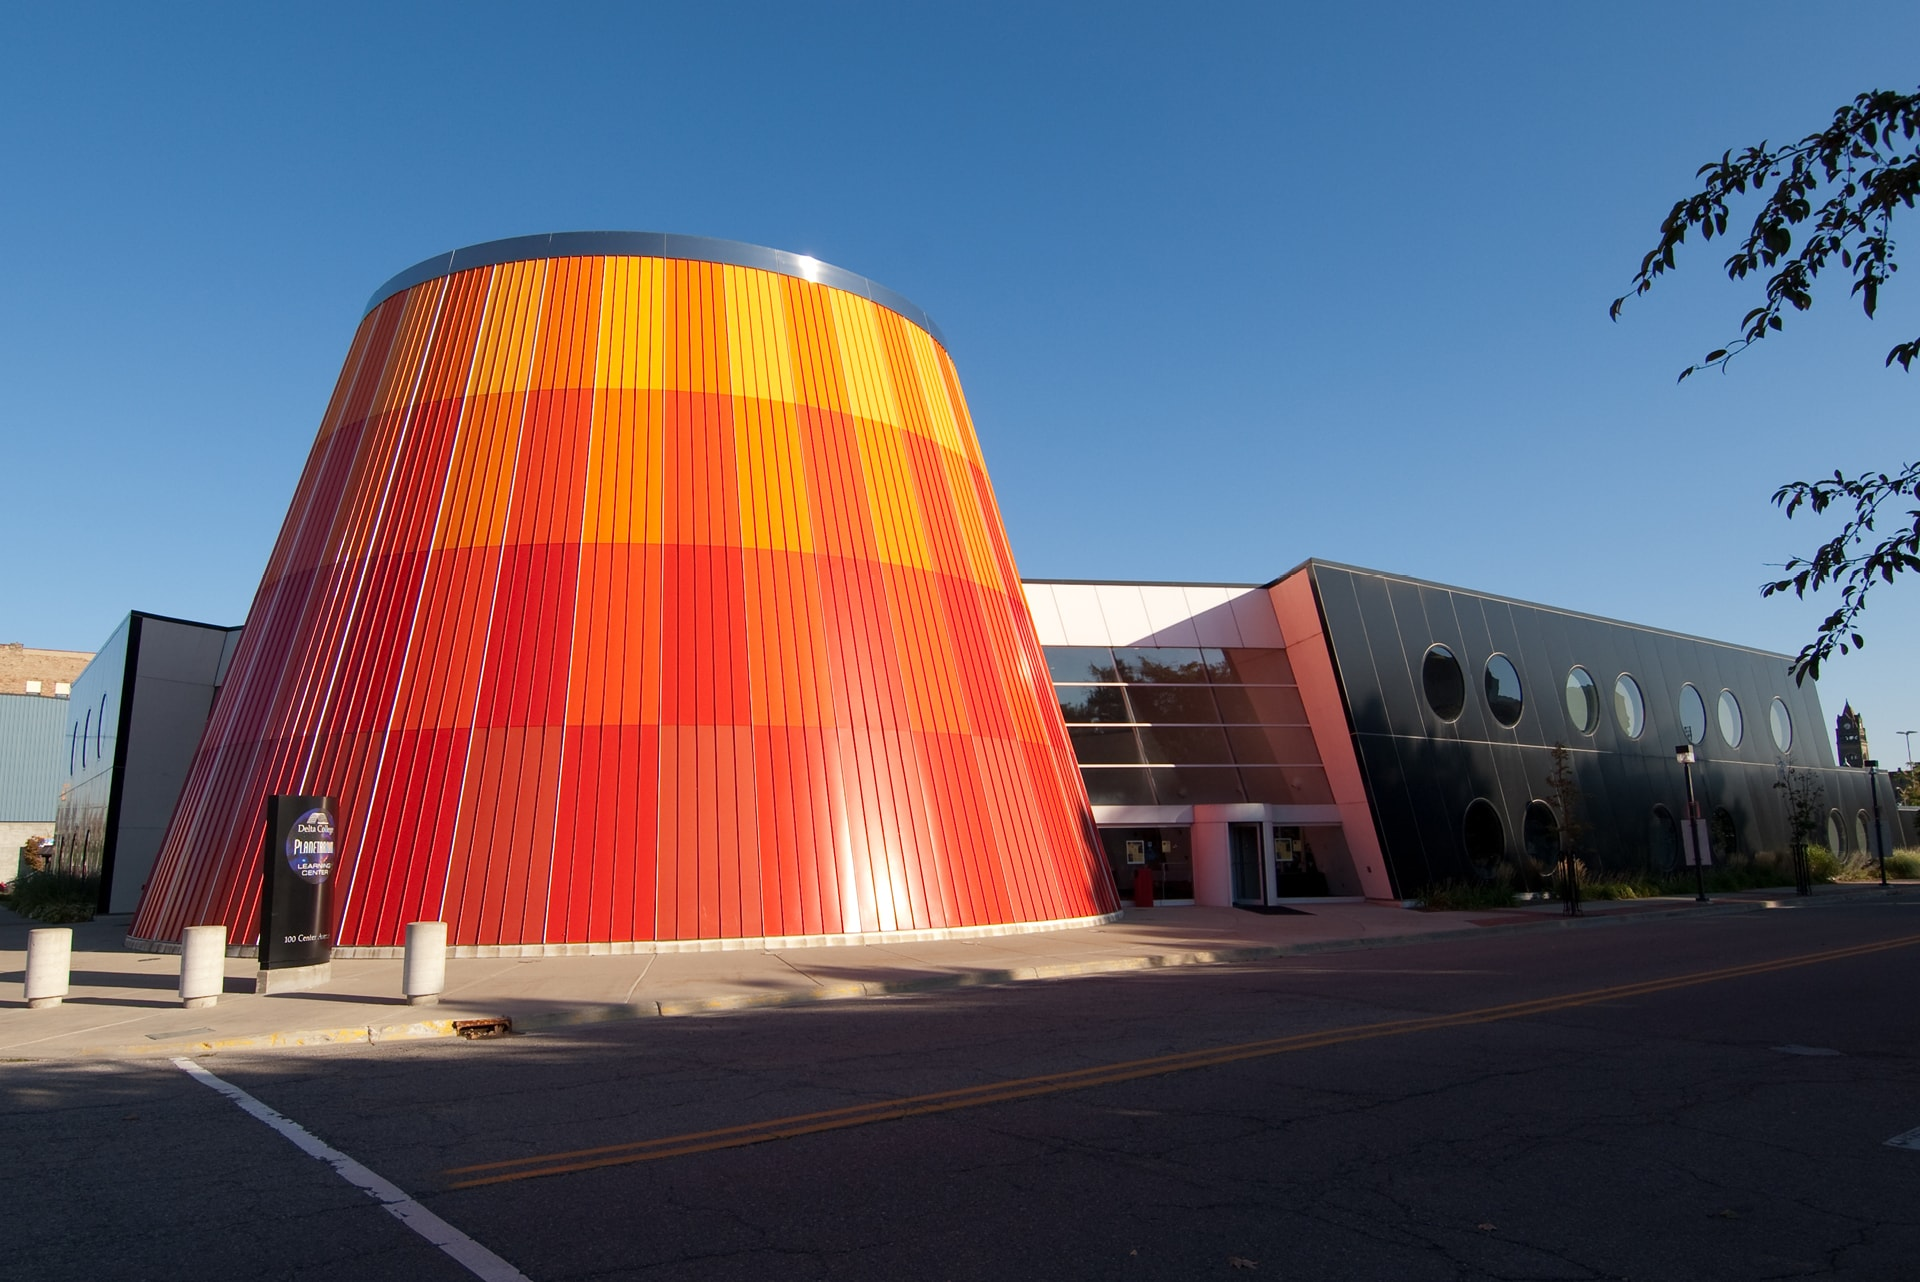 Exterior of the Planetarium & Learning Center